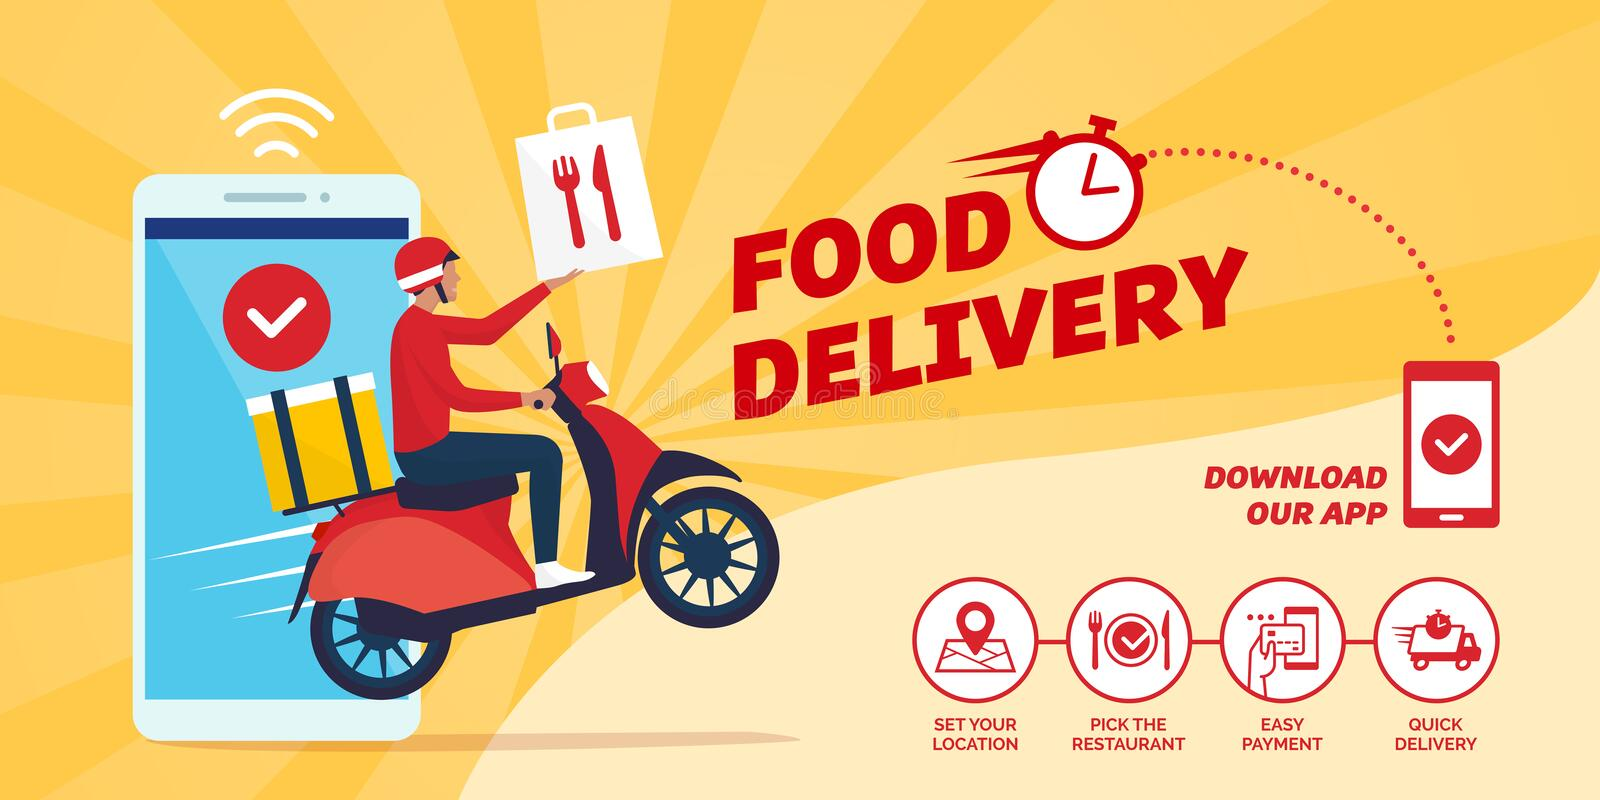 Fast food delivery app on a smartphone royalty free illustration